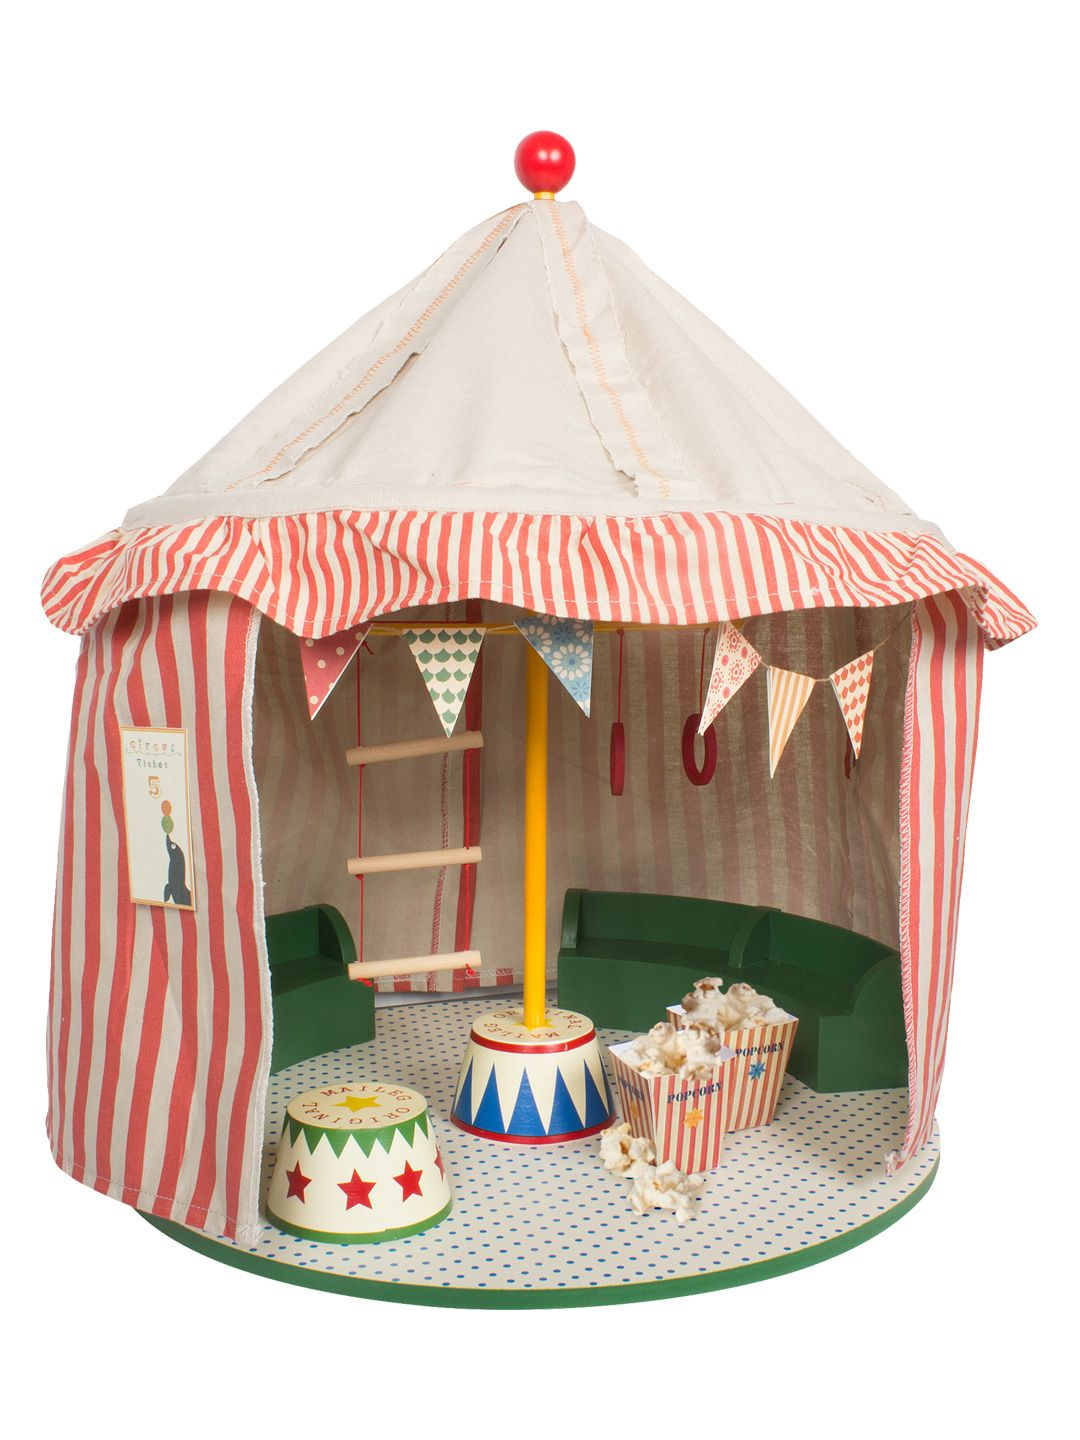 Circus Tent with Podium by Maileg at Gilt